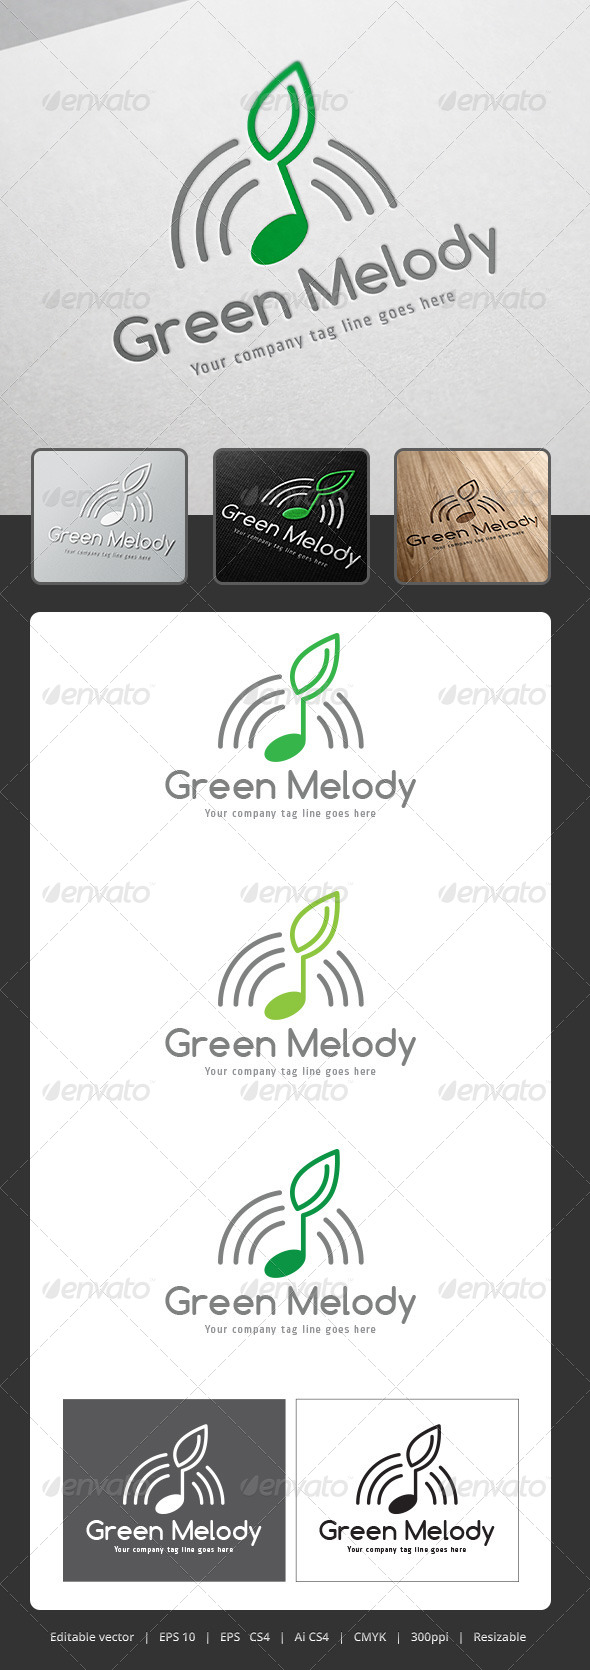 GraphicRiver Green Melody Logo 5285620